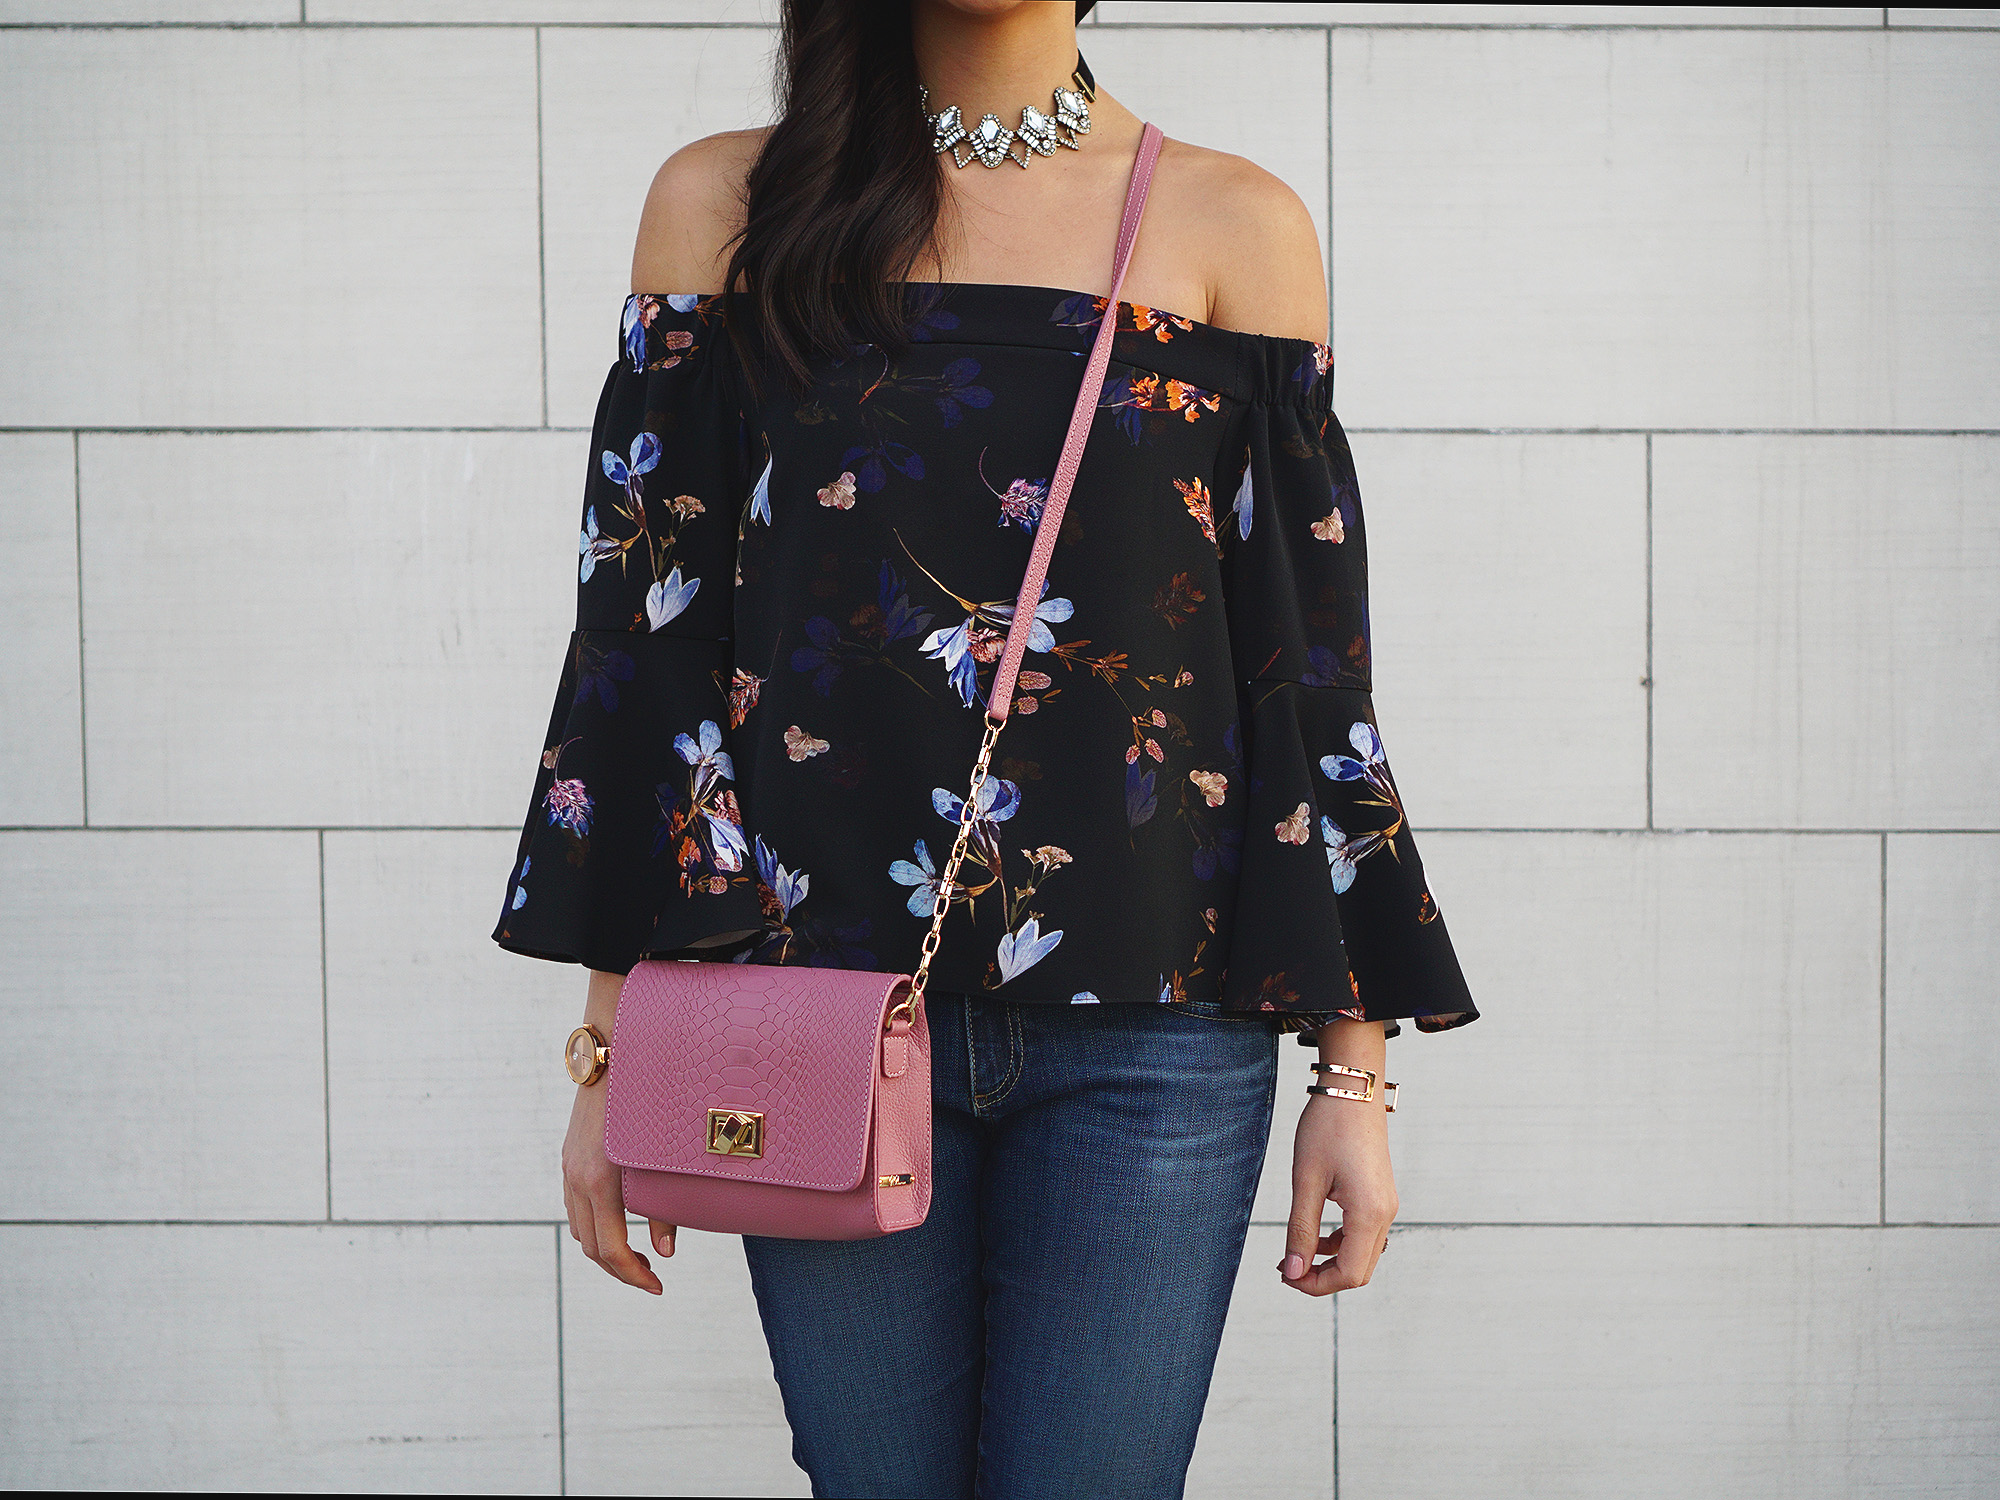 Skirt The Rules / Off the Shoulder Top